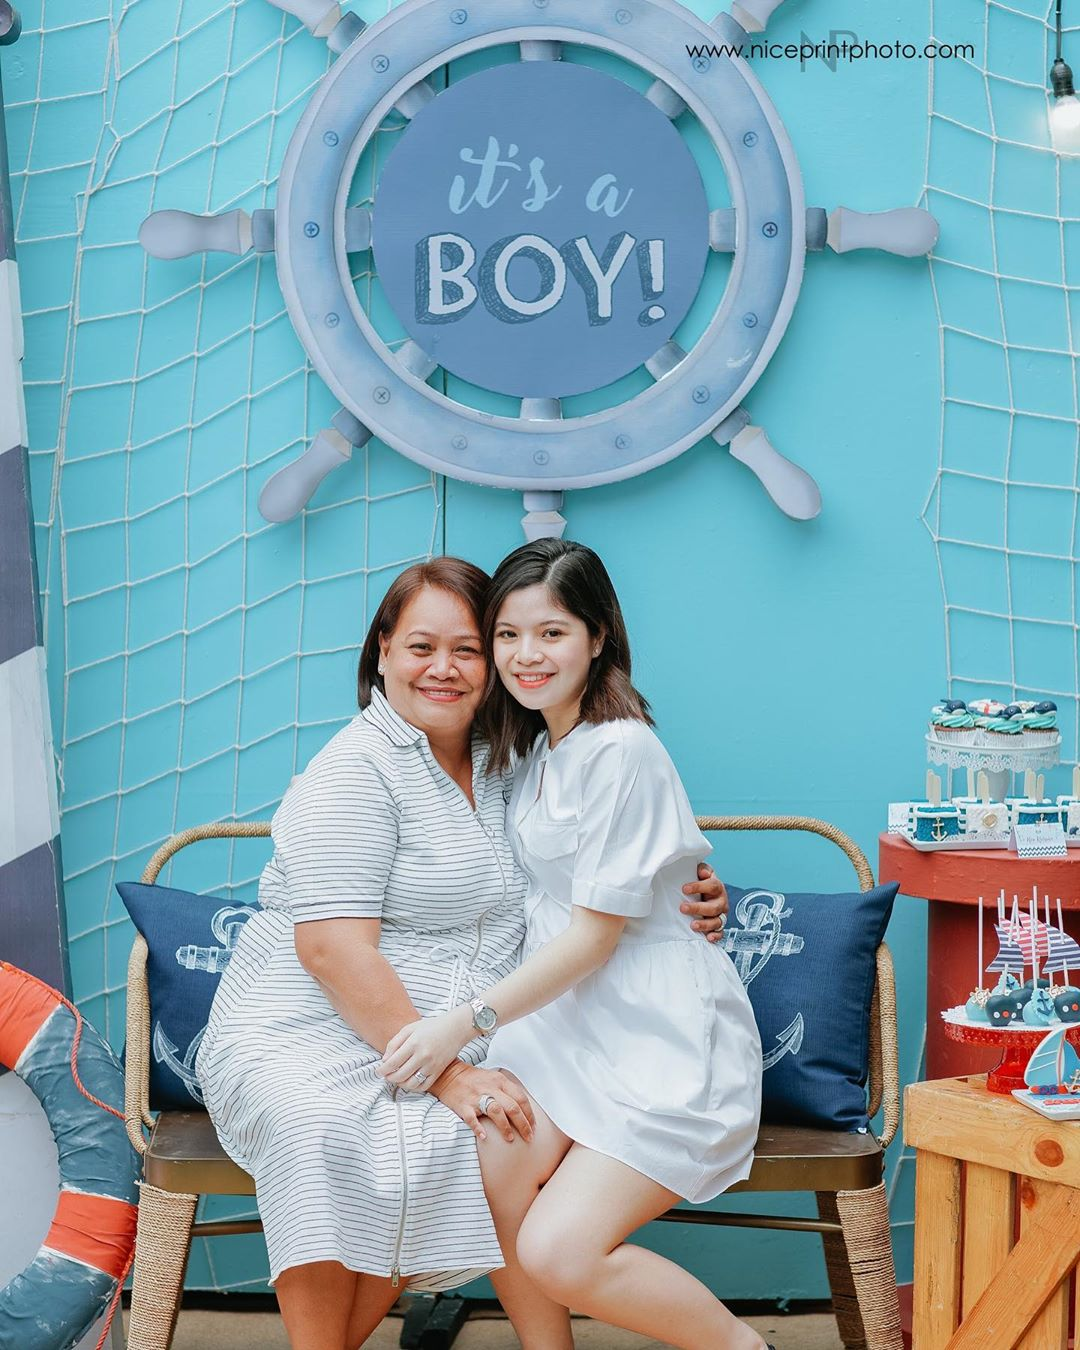 James and Thalia's nautical-themed baby shower